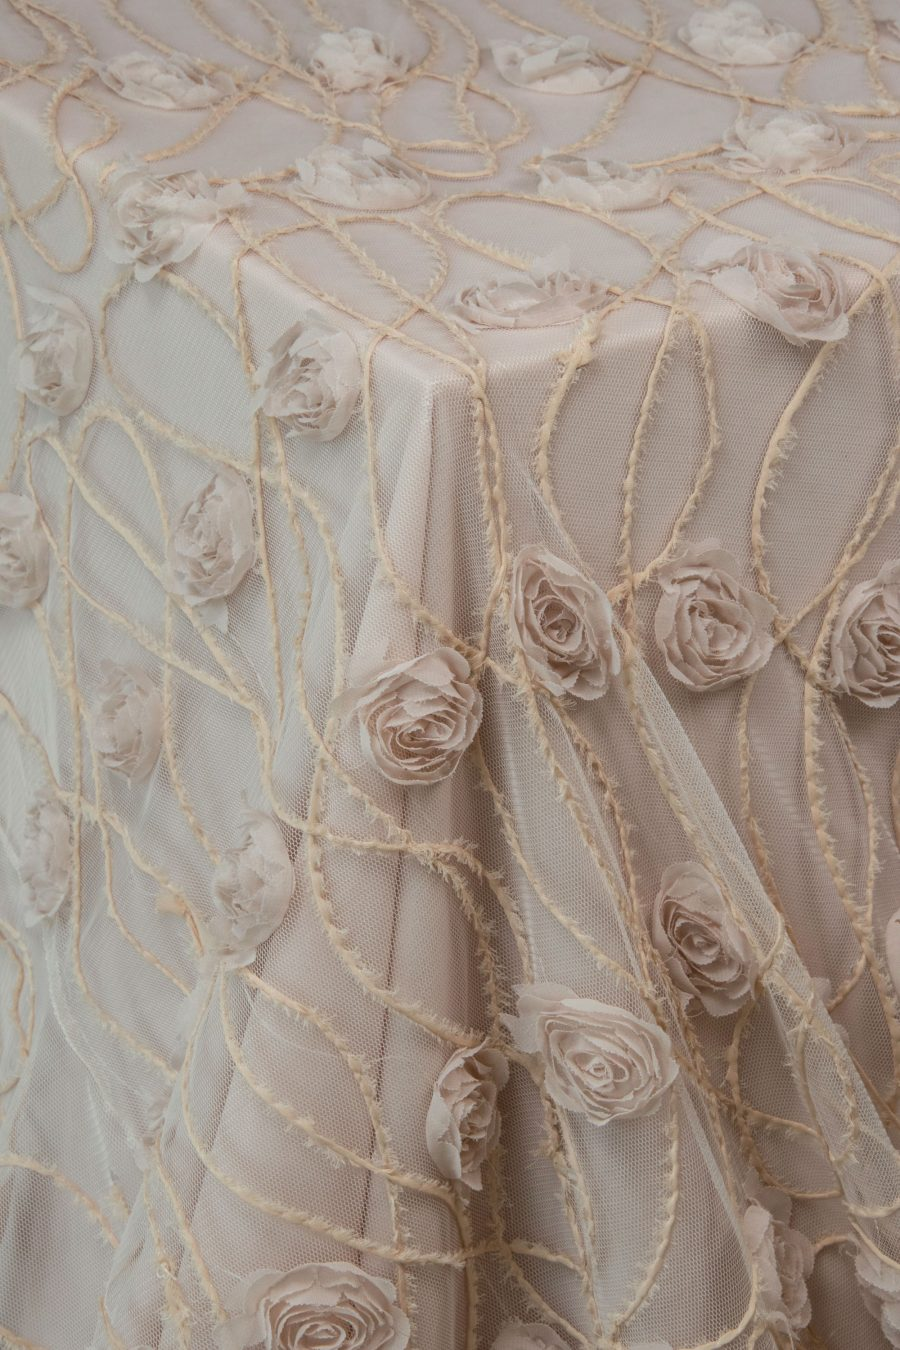 Lace-Blush-Floral-Tulle-900x1350.jpg